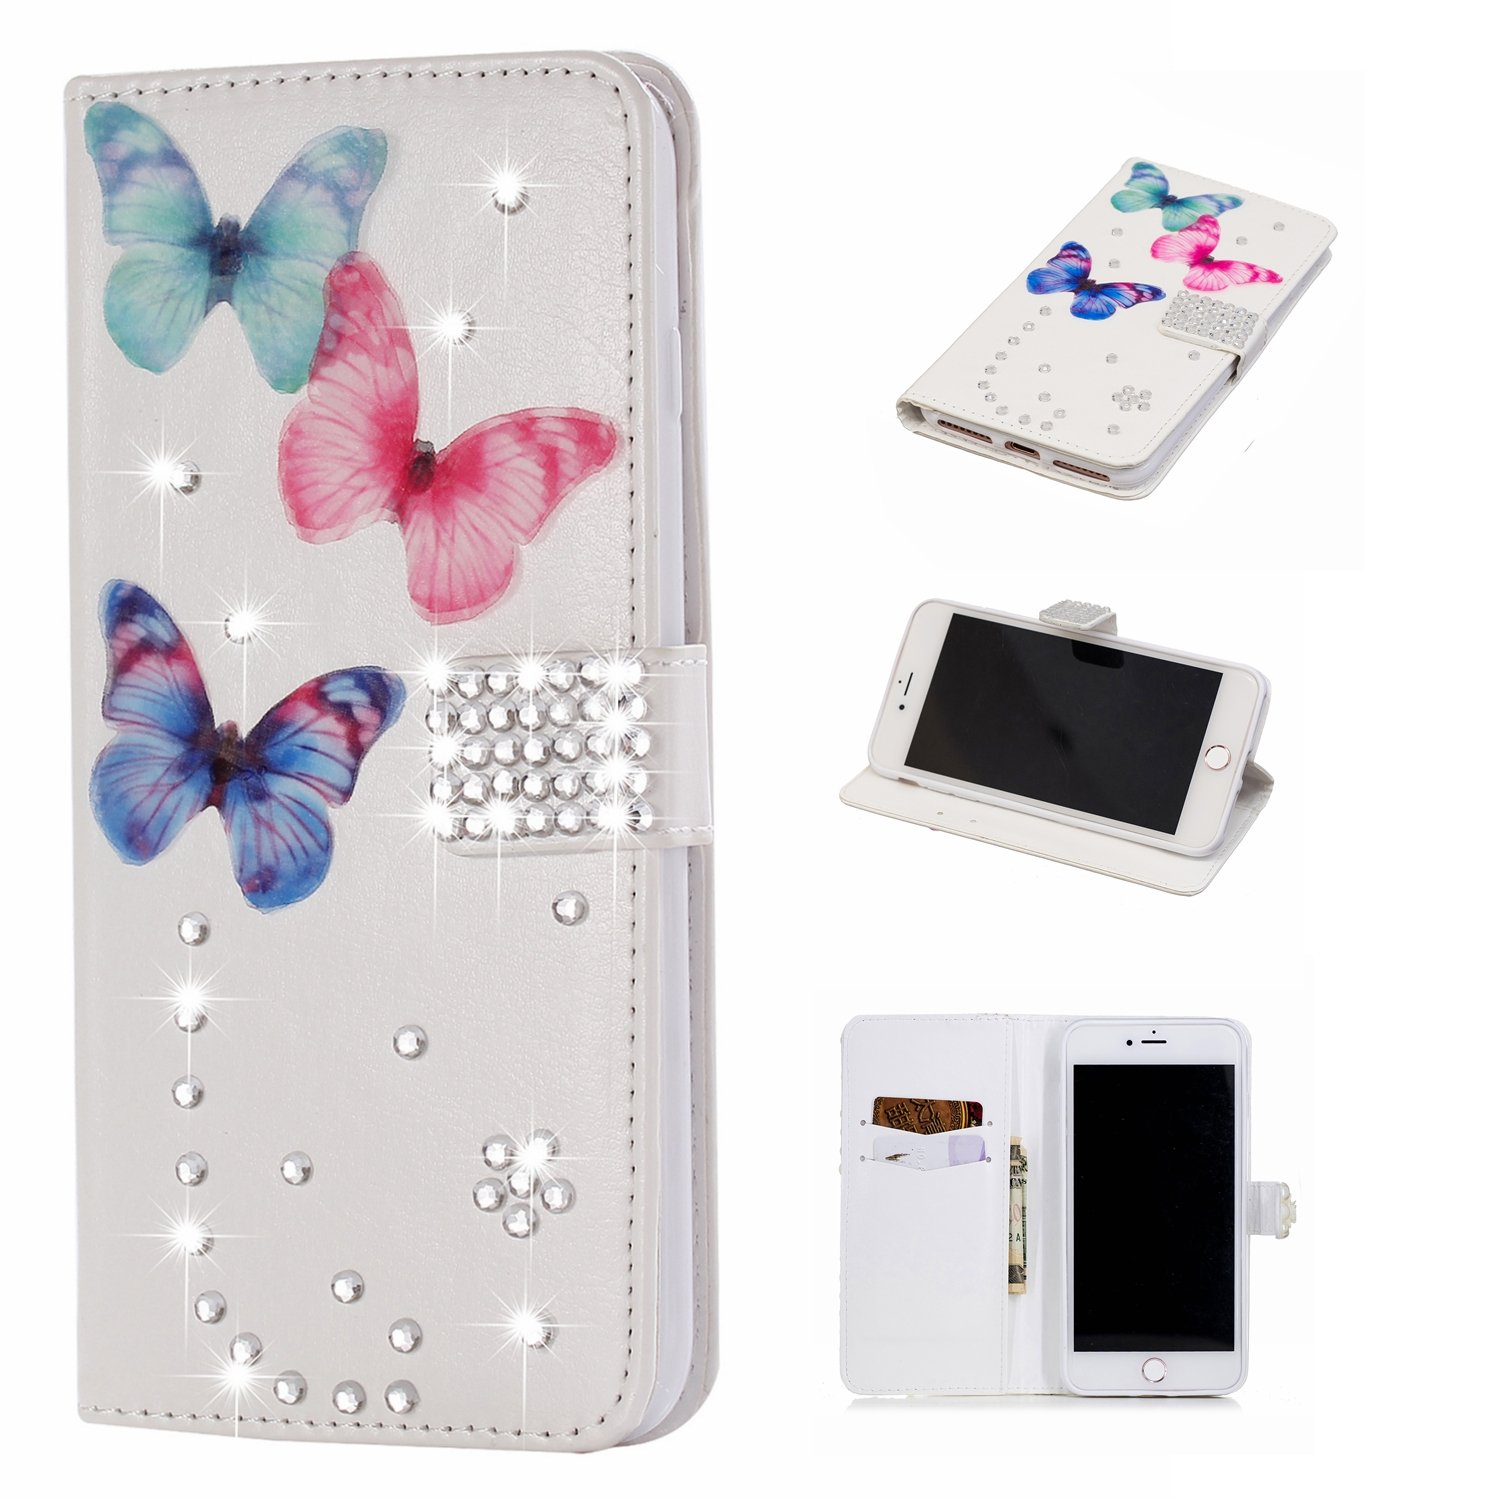 Bling Diamond Wallet Case for iPhone 7 Plus,Gostyle iPhone 8 Plus Handmade 3D Shiny Glitter Crystal Rhinestone Leather Flip Stand Cover with Credit Card Slots Magnetic Closure,Butterfly & Gems